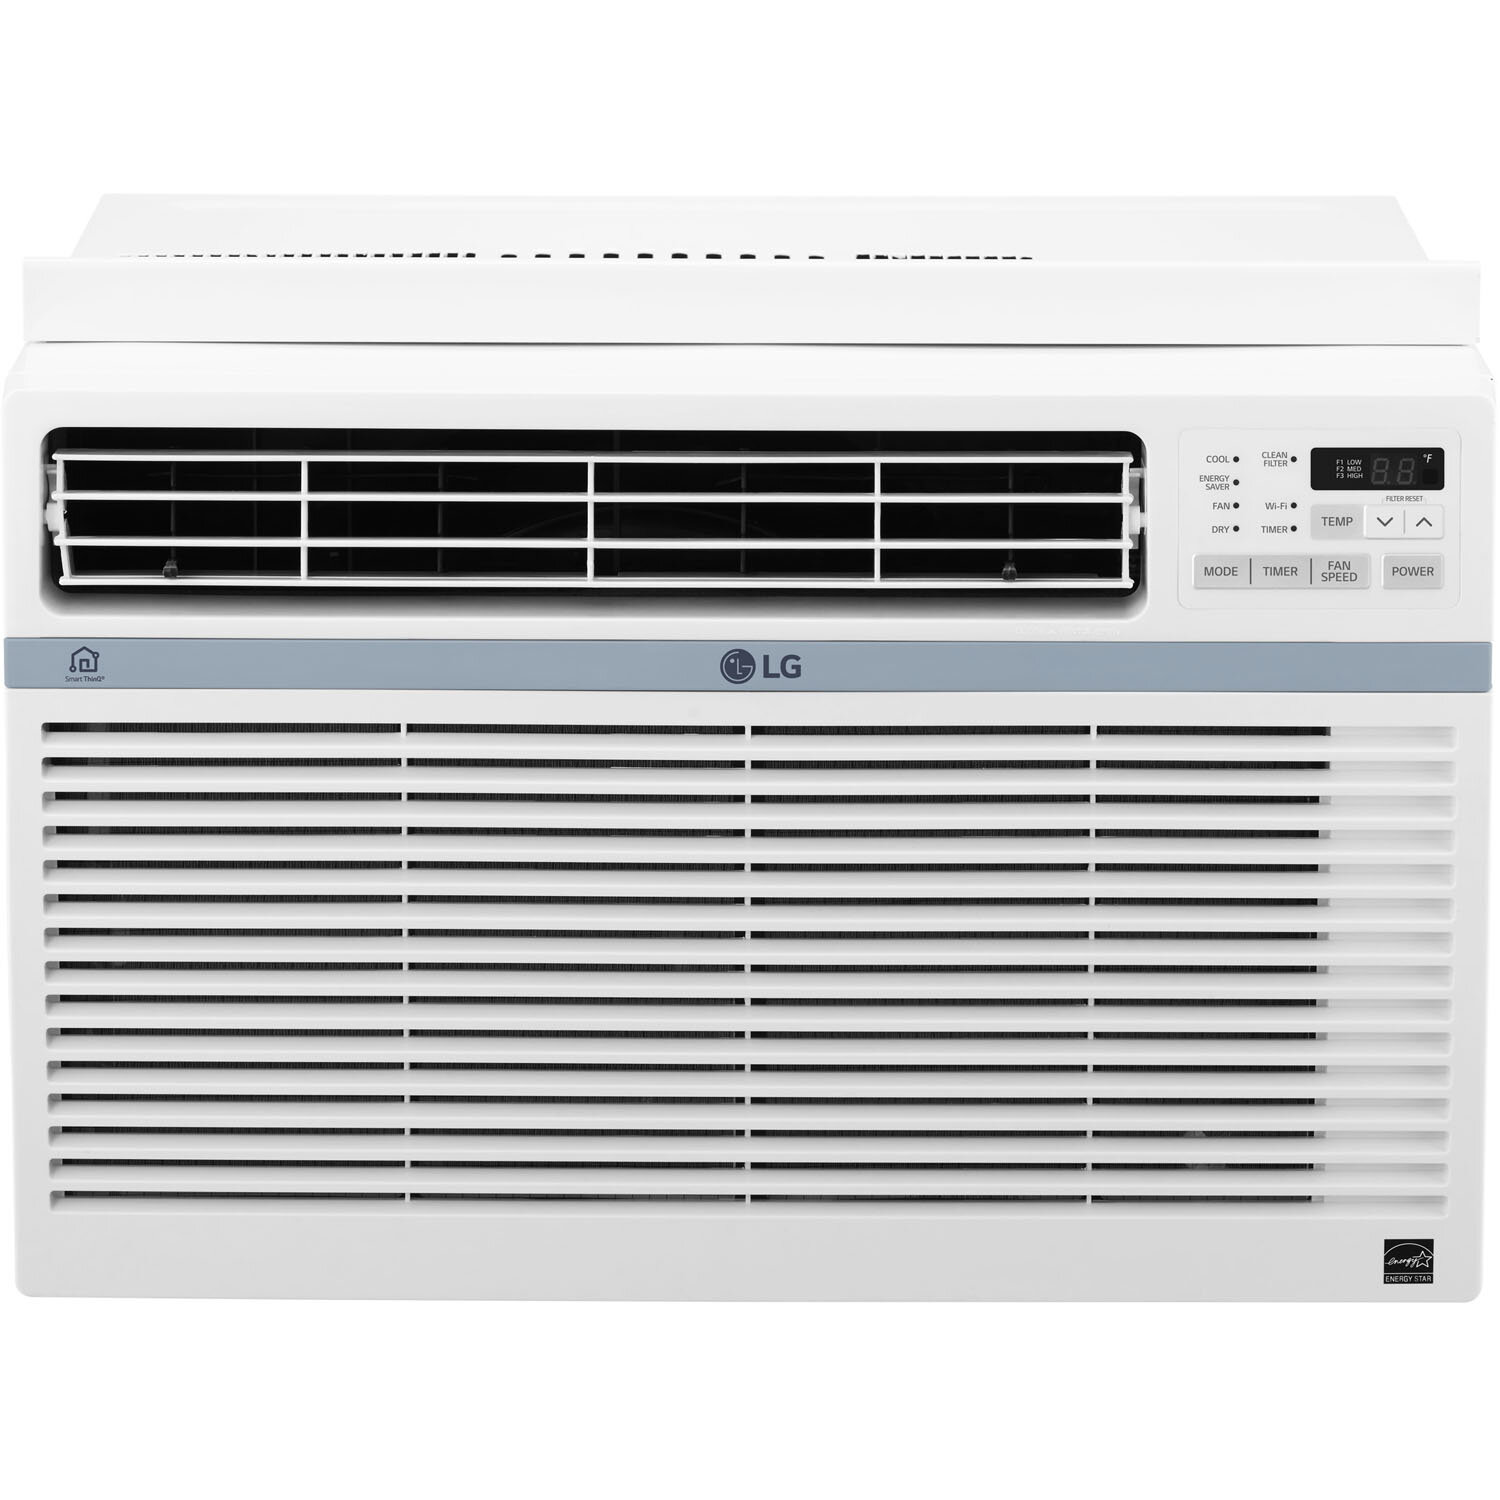 Lg 8 000 Btu Energy Star Window Air Conditioner With Remote And Wifi Control Reviews Wayfair